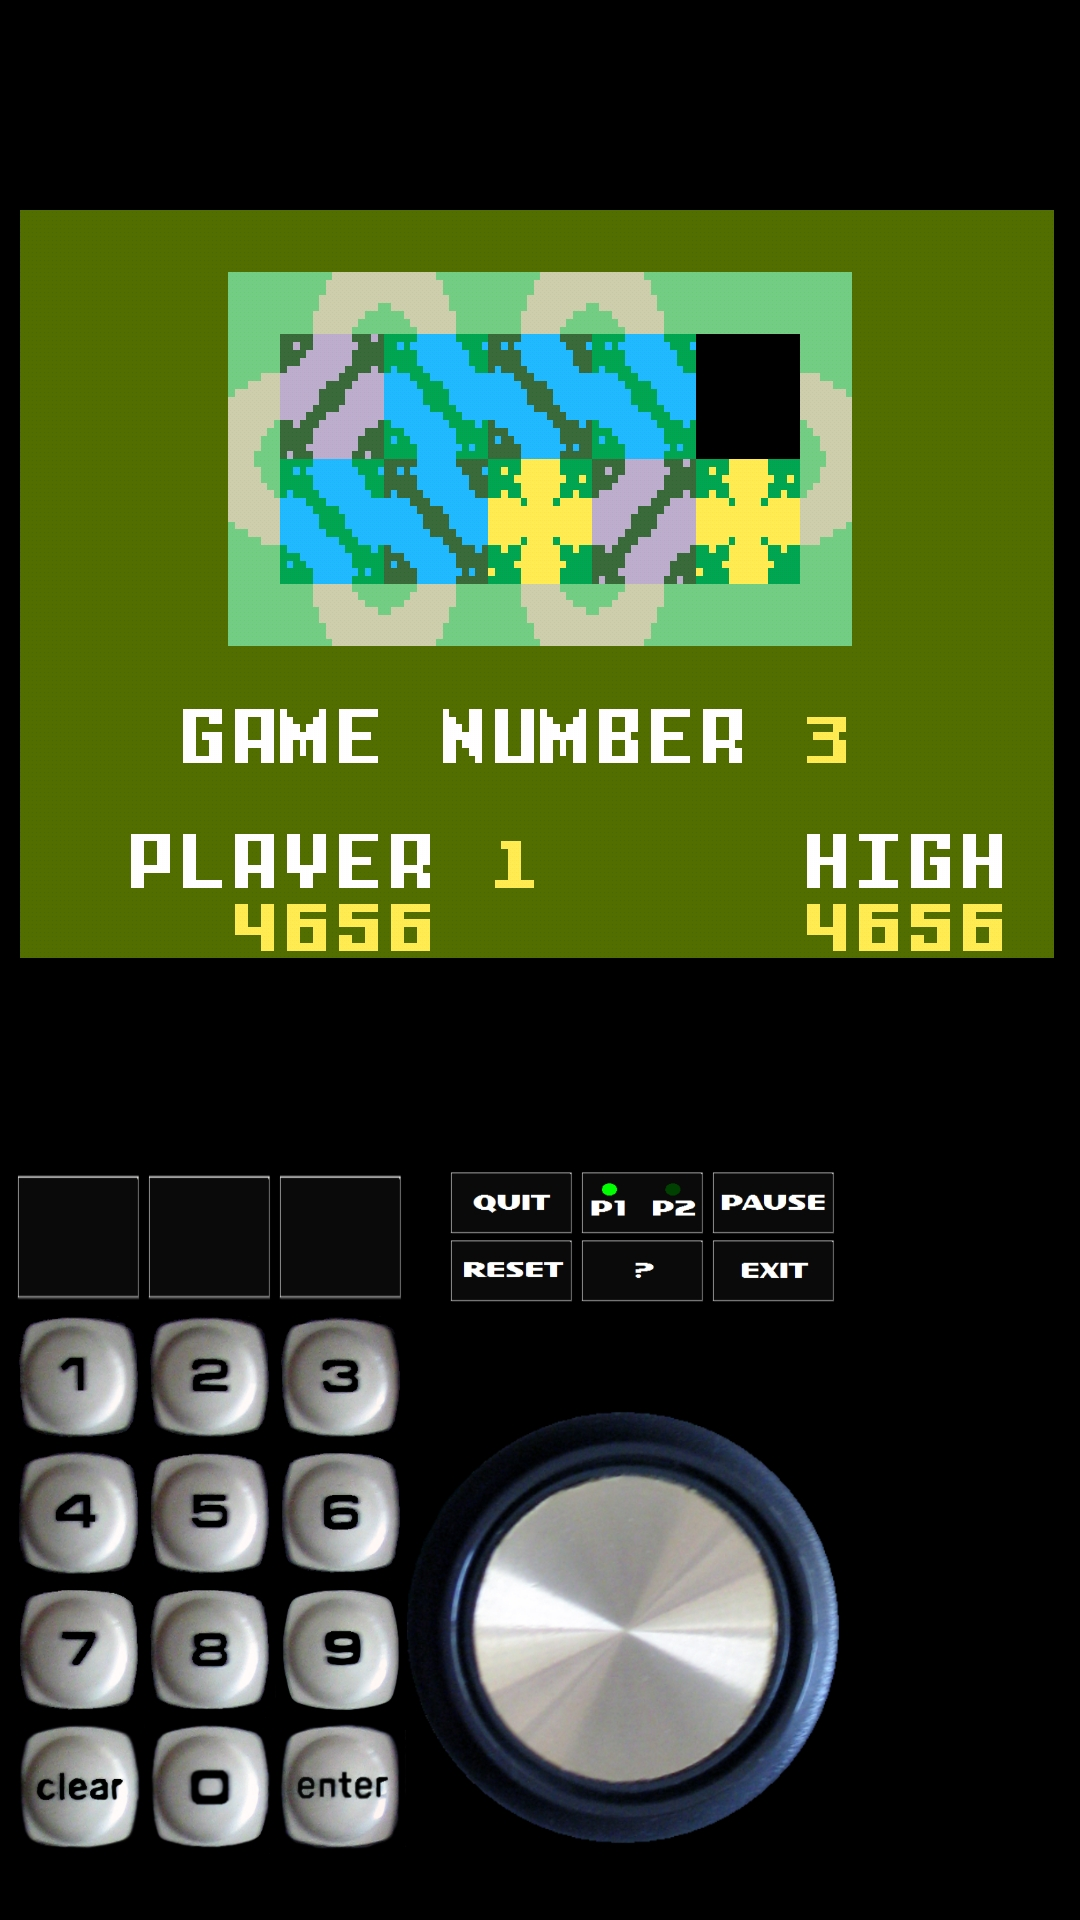 Bamse: Happy Trails: Skill 3 (Intellivision Emulated) 4,656 points on 2019-02-25 13:08:39